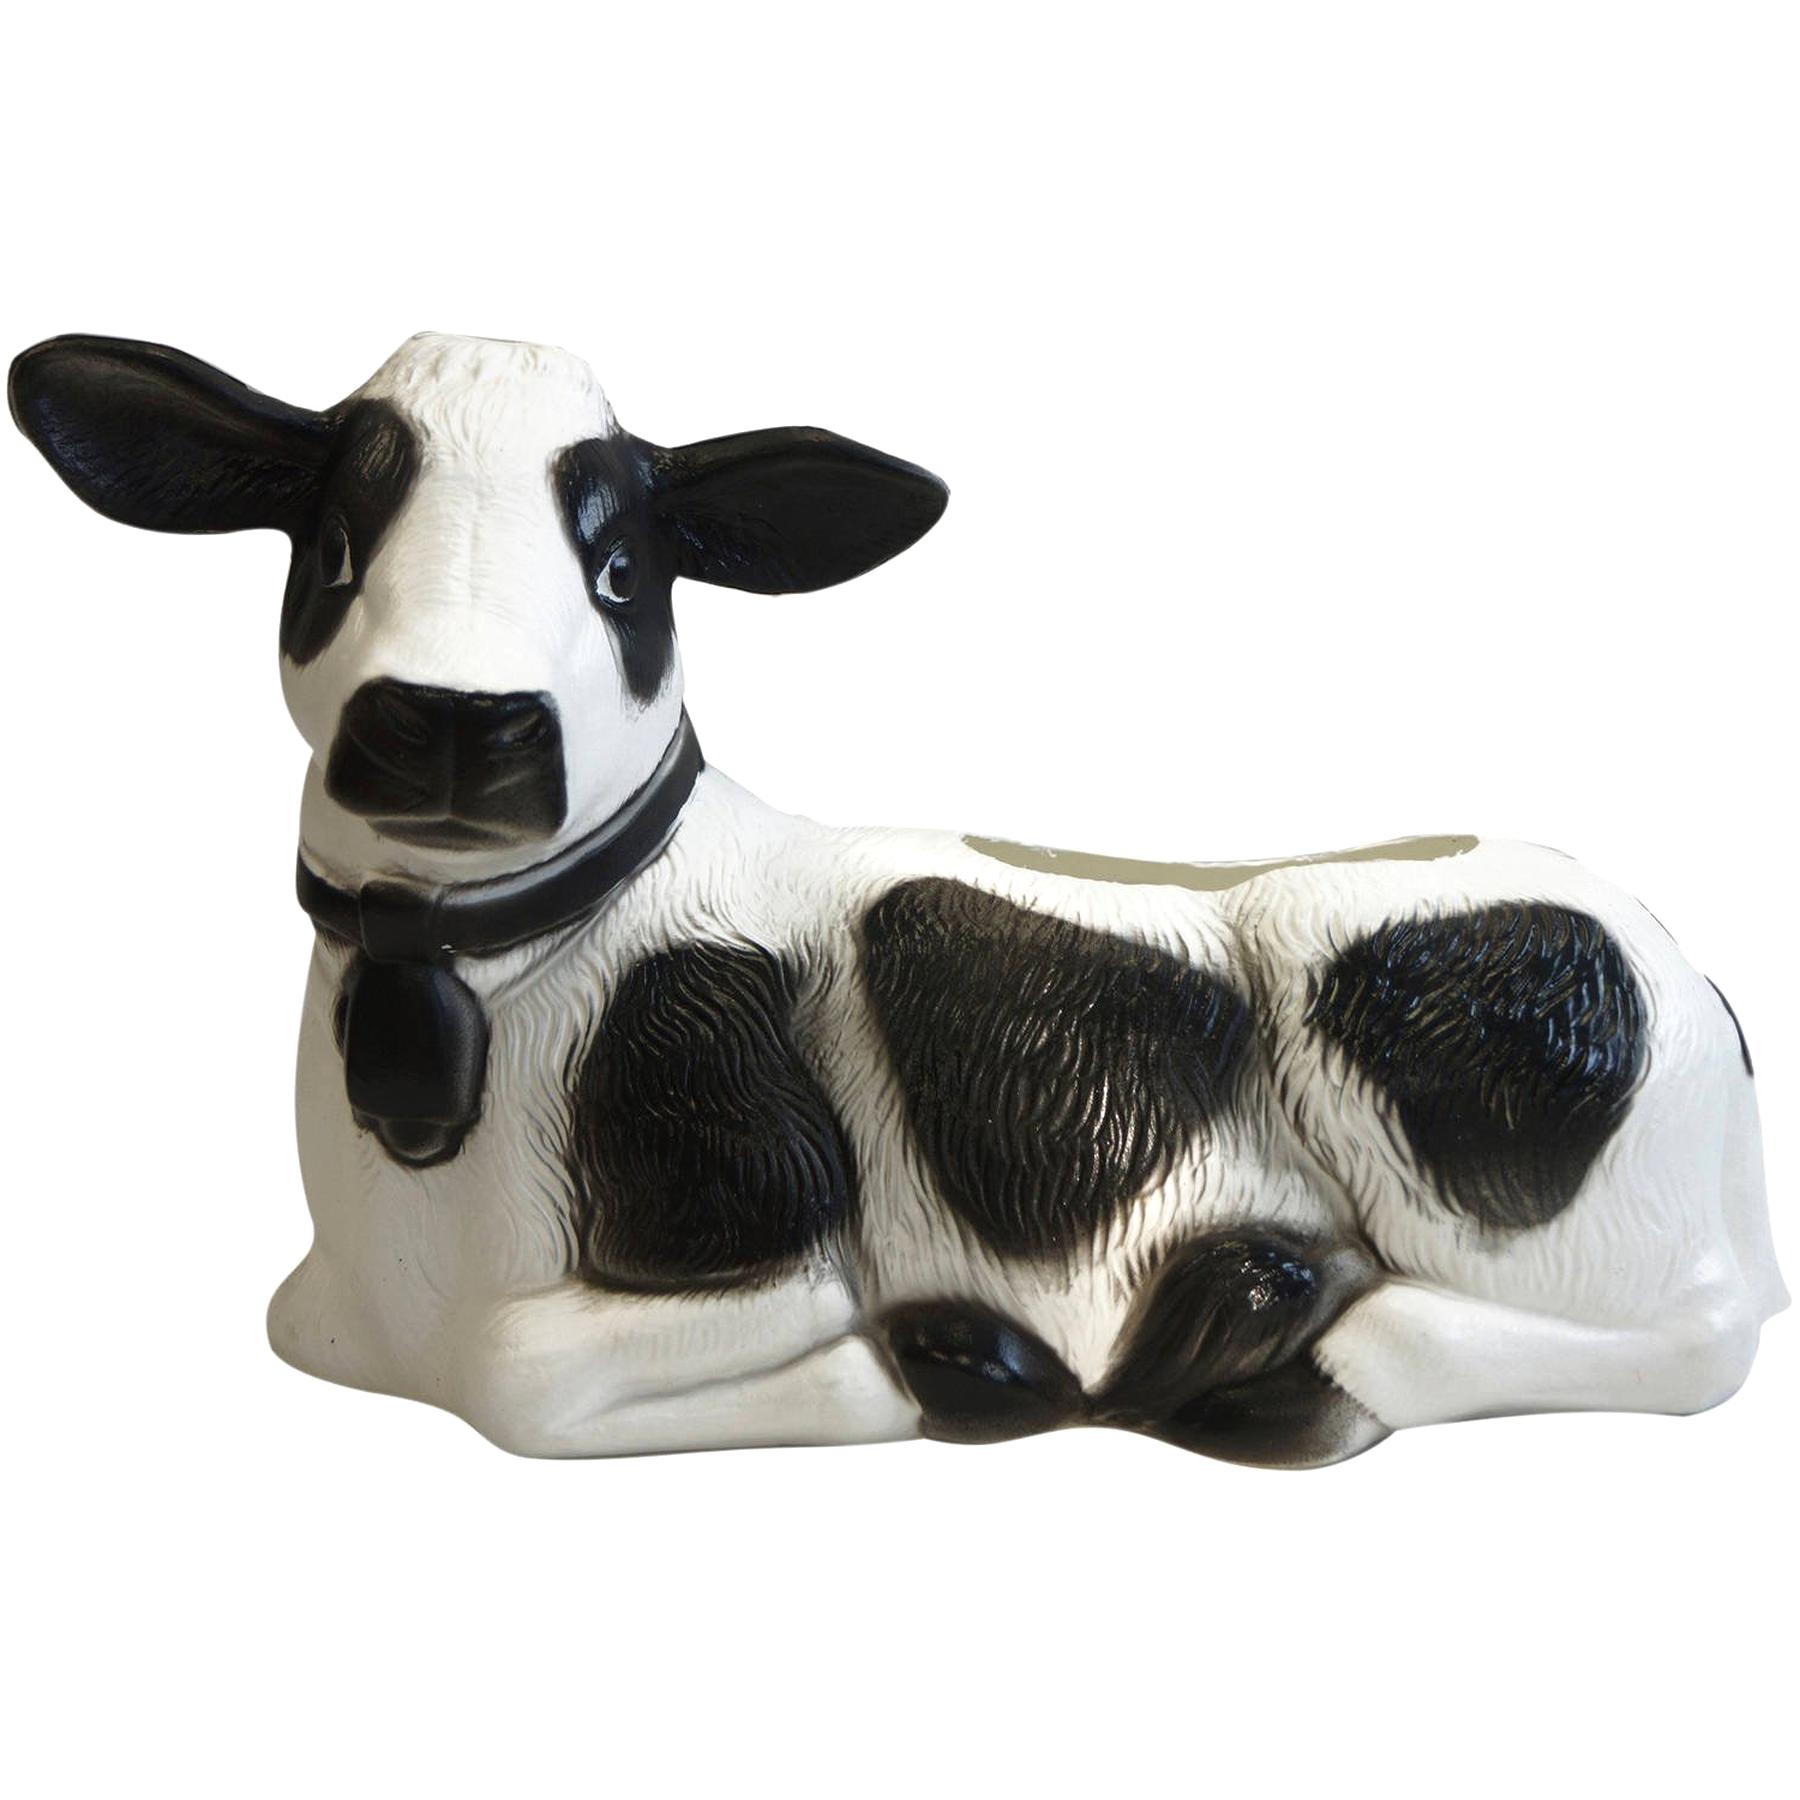 cow planter for sale